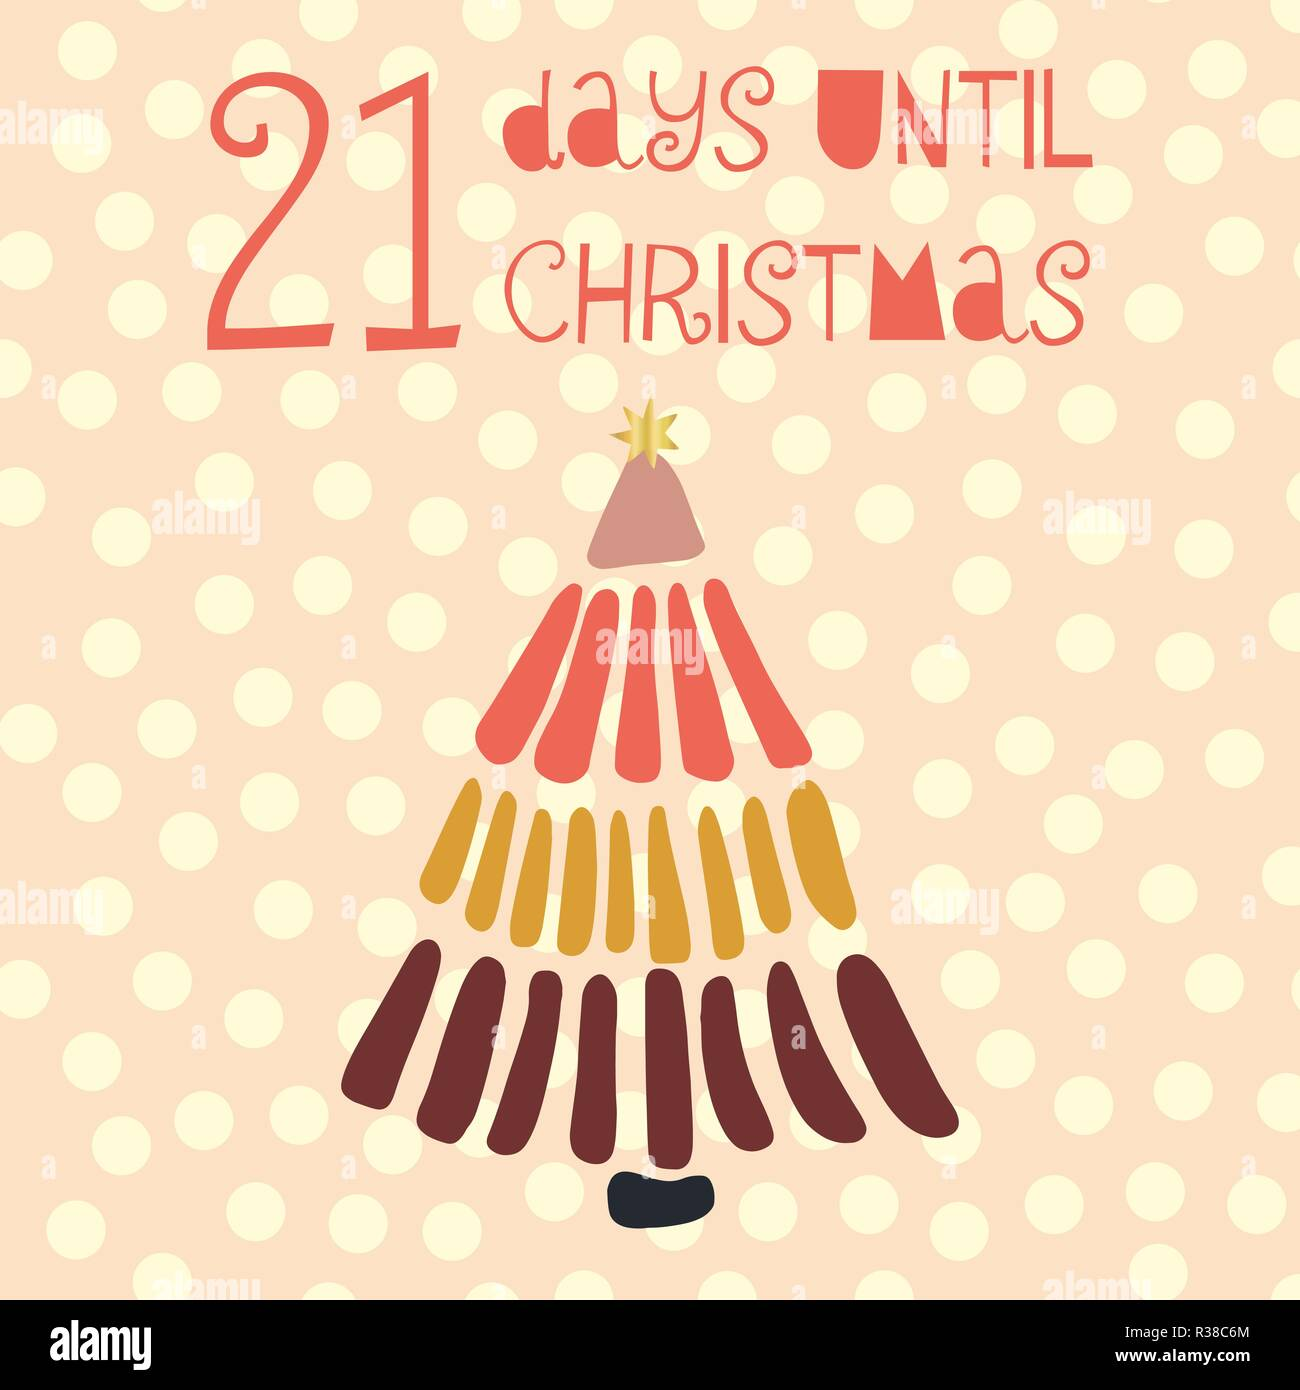 Days Until Christmas Countdown.21 Days Until Christmas Vector Illustration Christmas